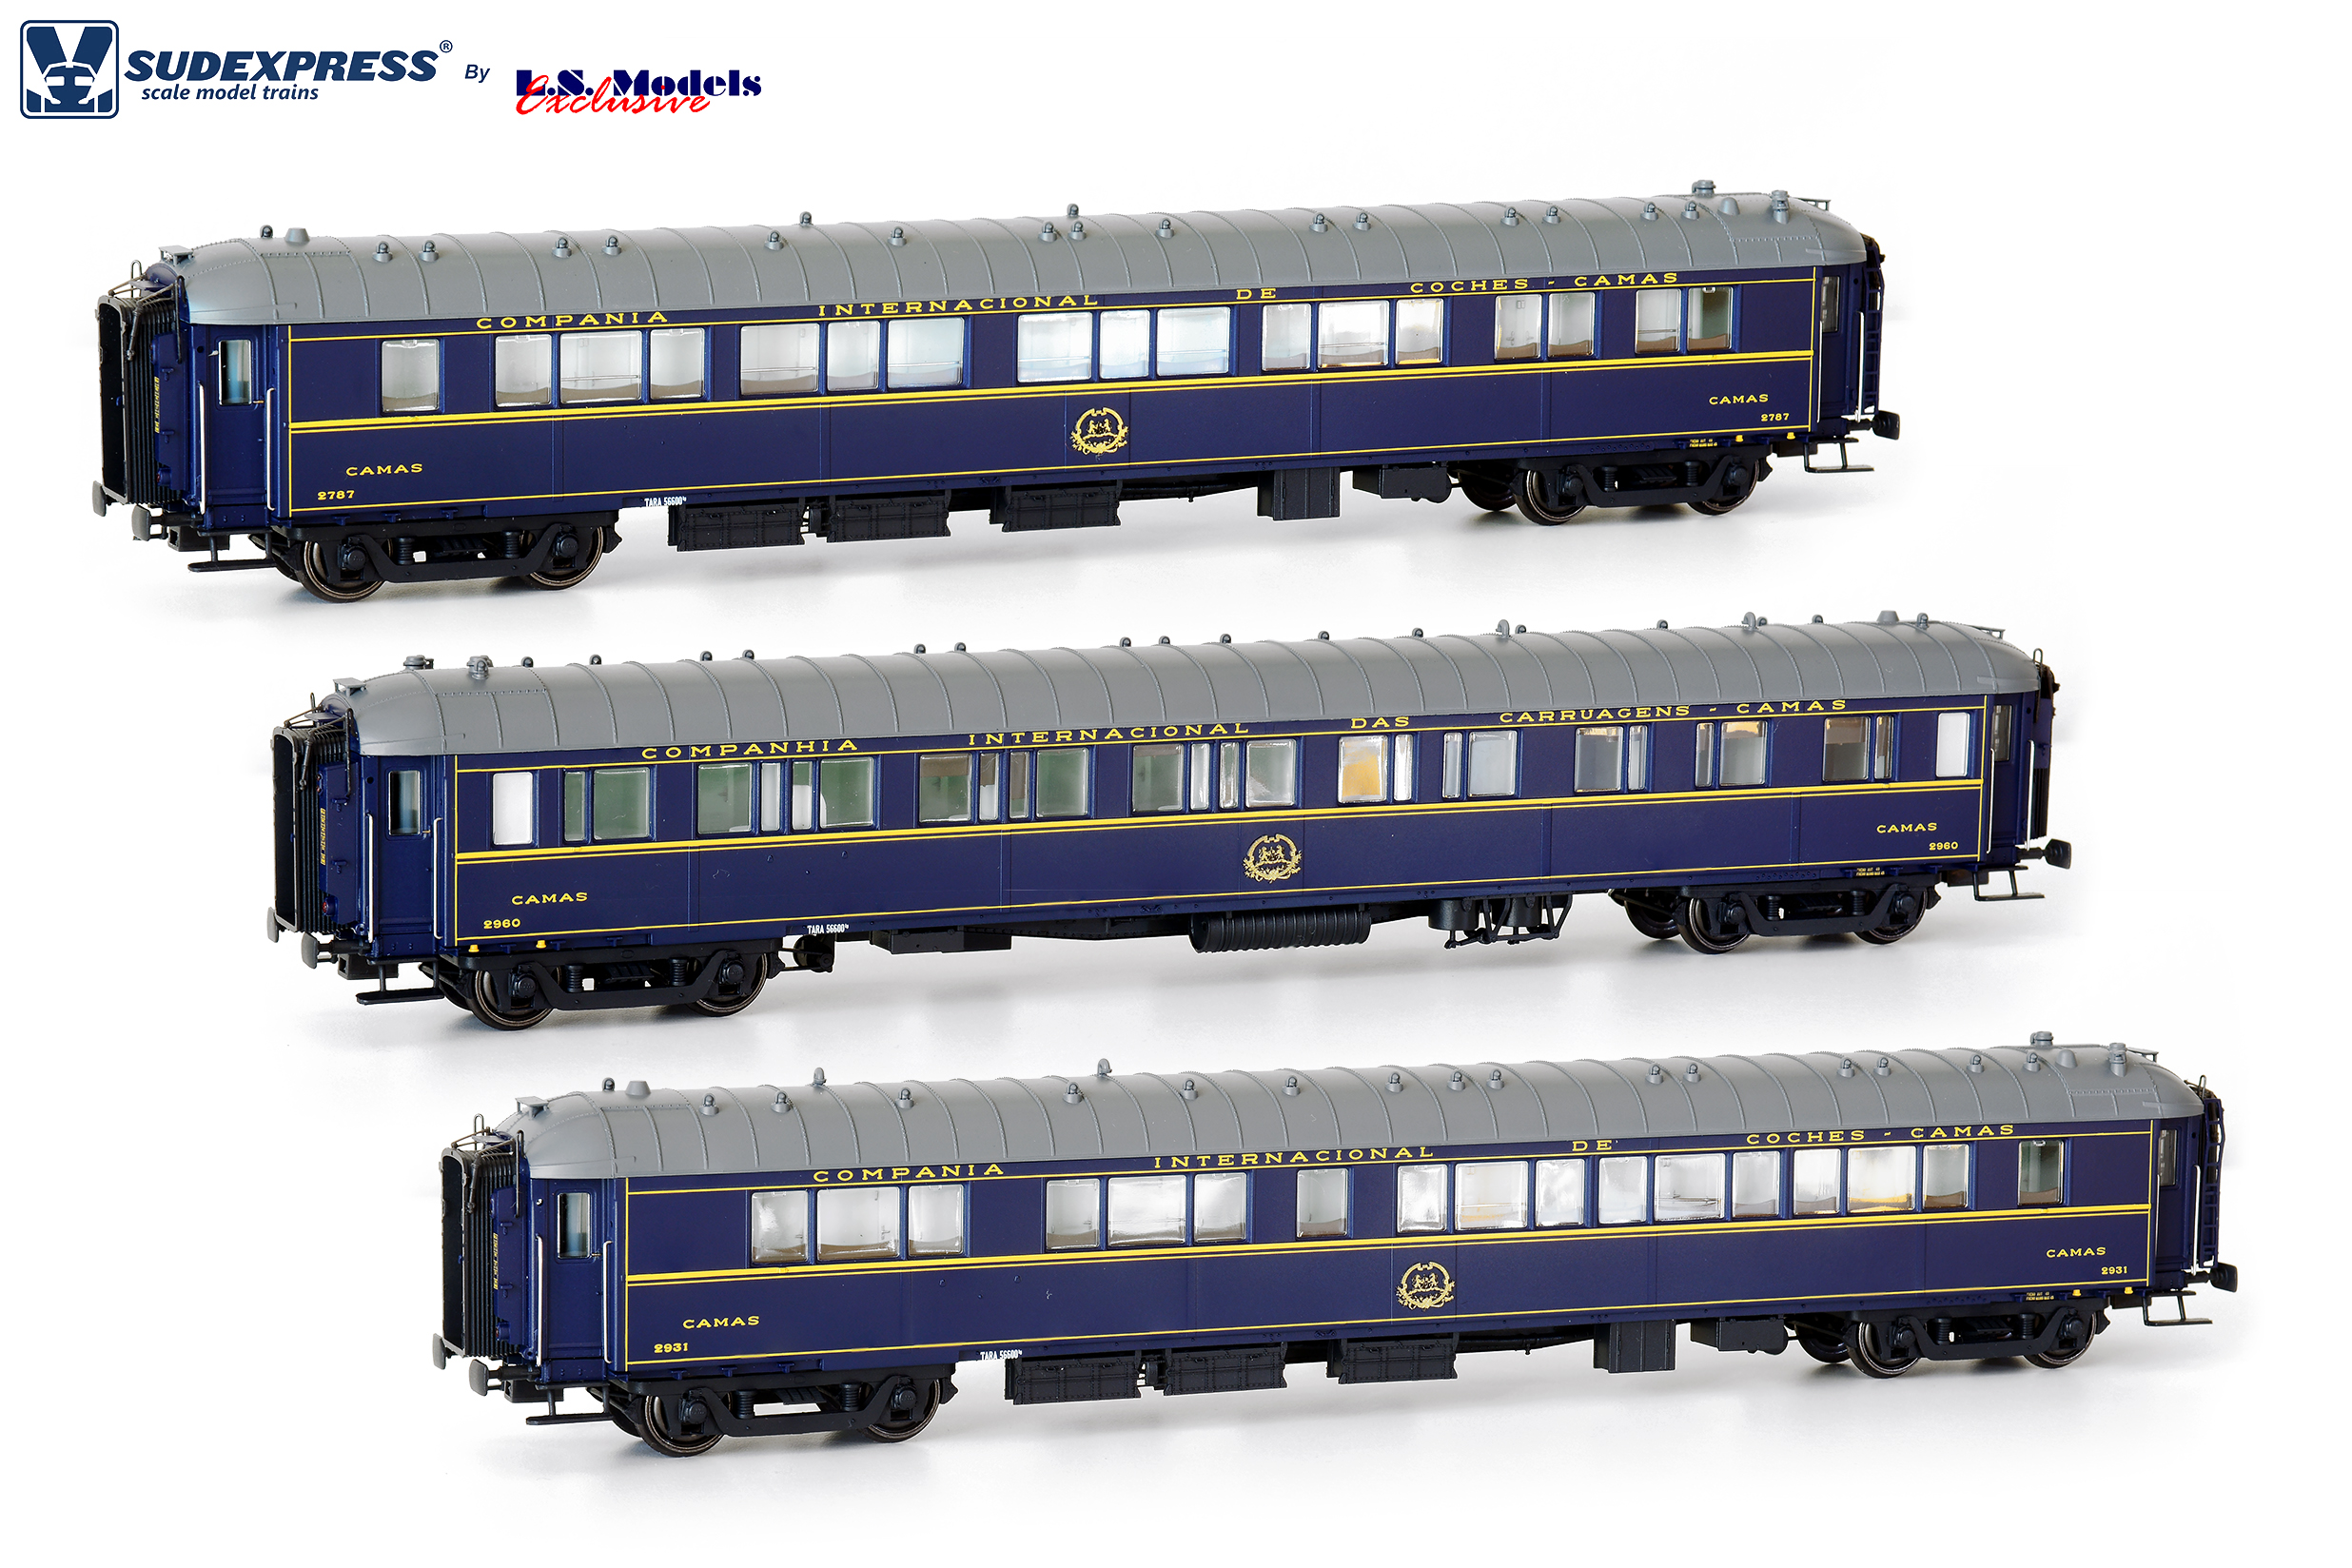 CIWL sleeper coach S2 2796